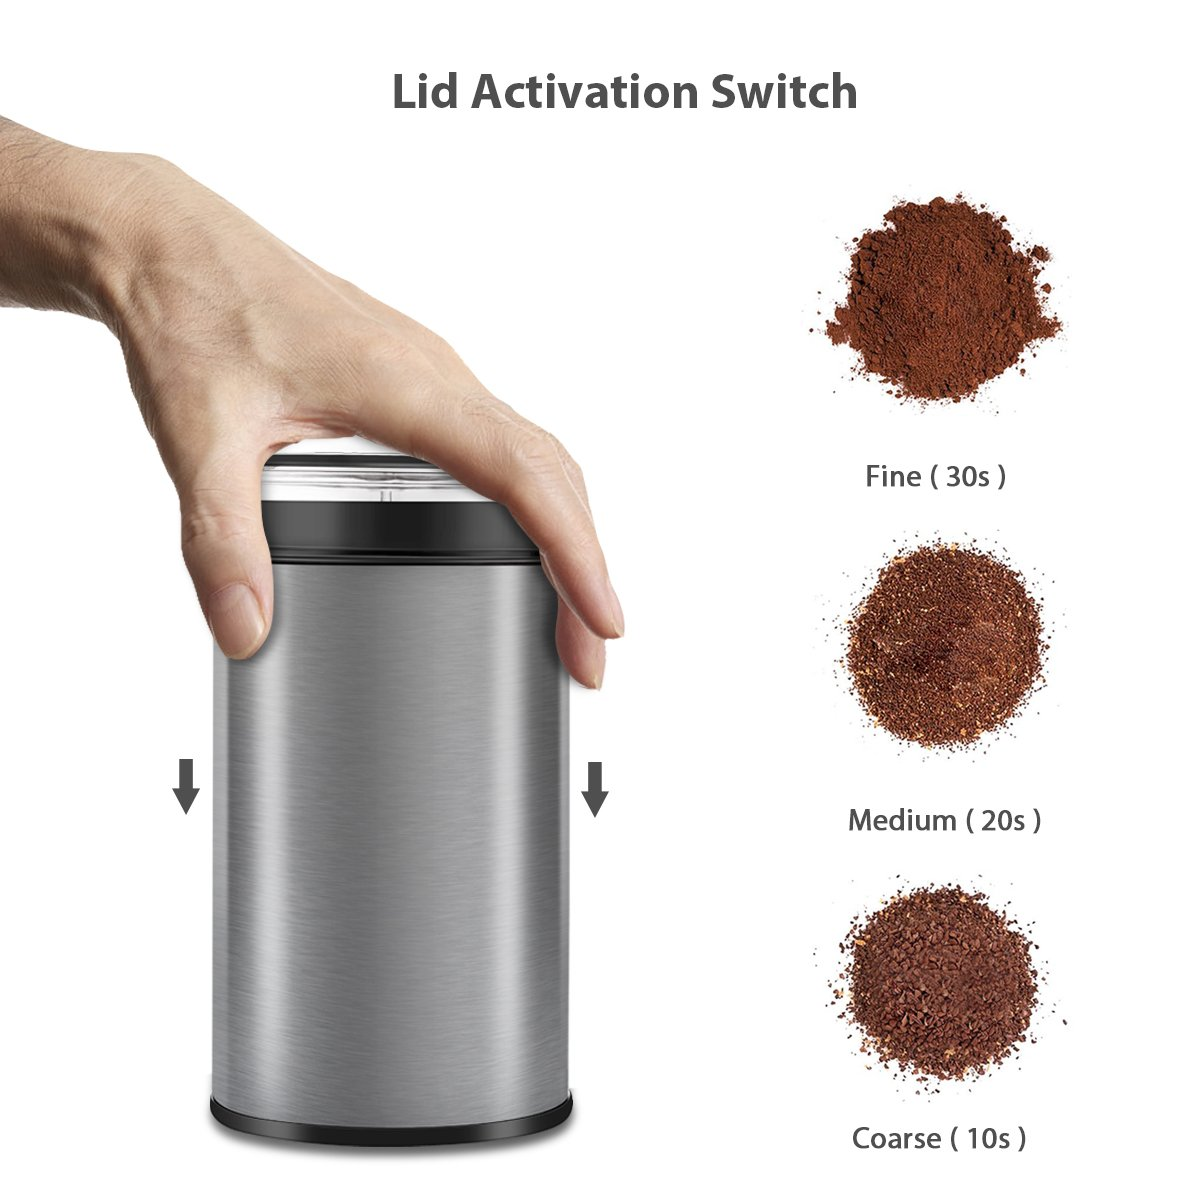 Coffee Grinder Electric, TOBOX Multifunctional Stainless Steel Blade Coffee Grinder Fast Grinding Coffee Beans, Nuts, Grains, Spices (Sliver) by TOBOX (Image #3)